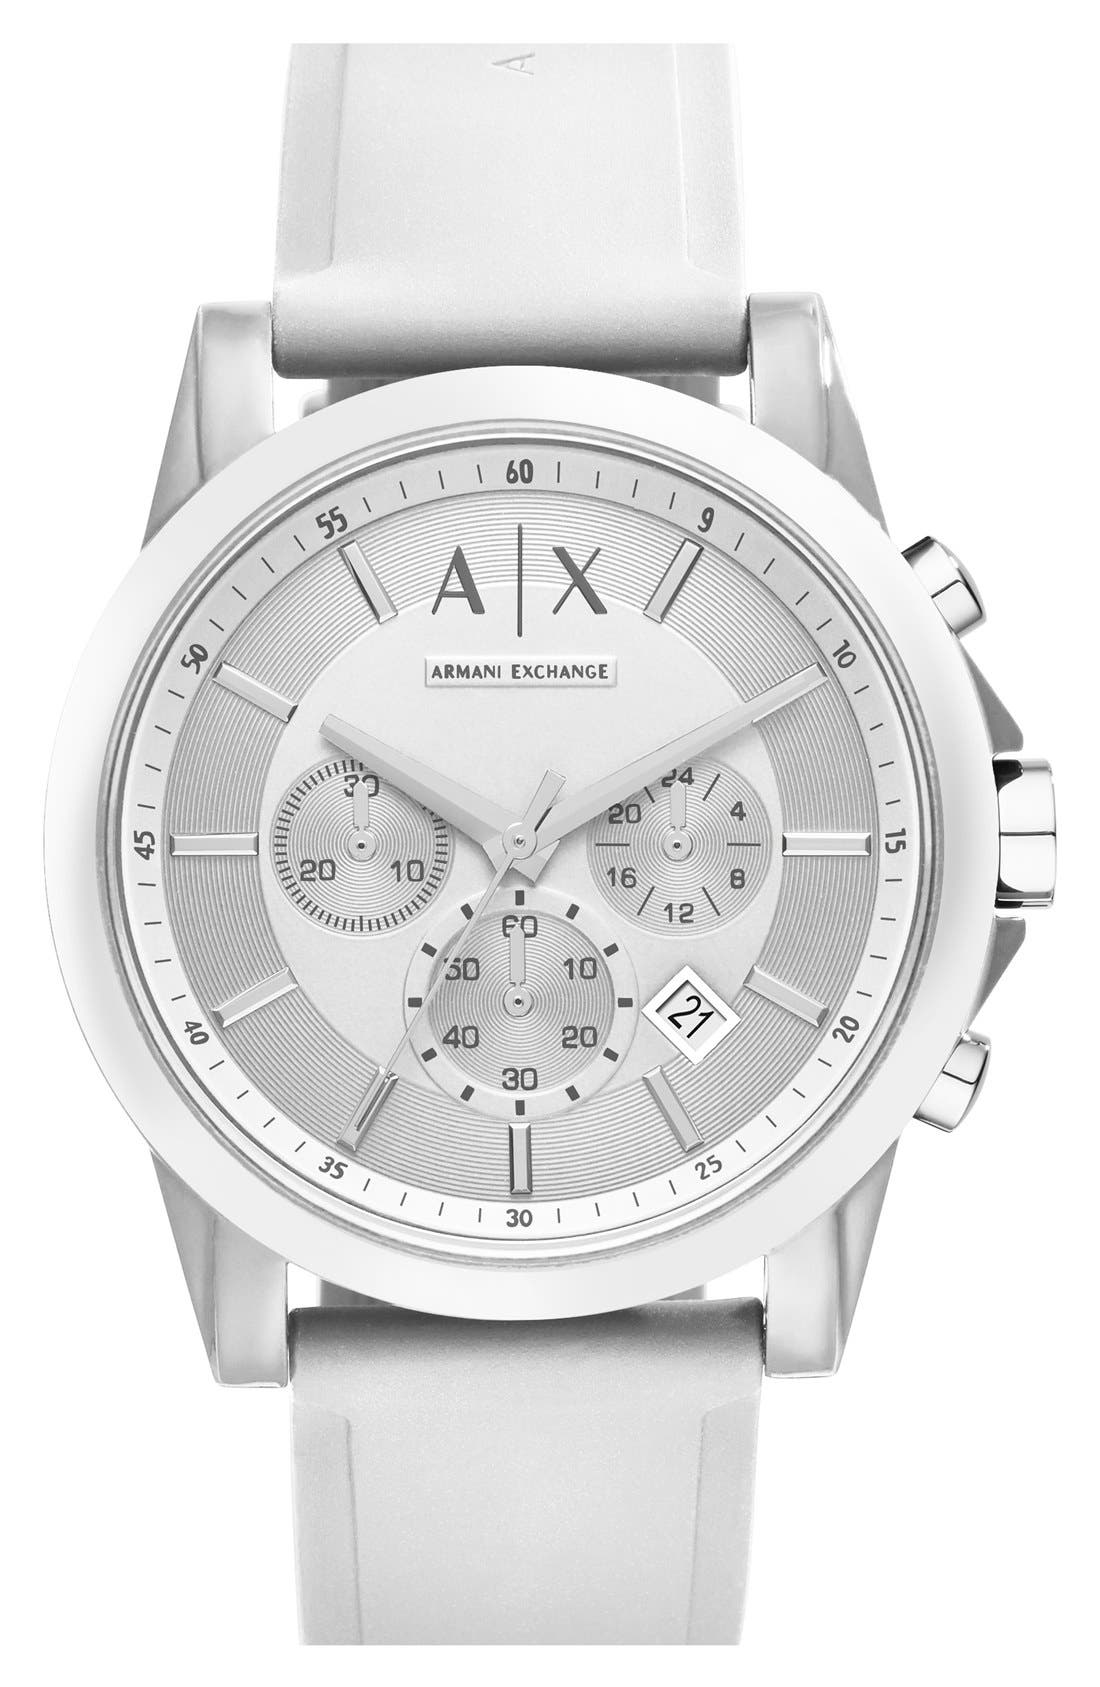 AX ARMANI EXCHANGE, Chronograph Silicone Strap Watch, 44mm, Main thumbnail 1, color, 100